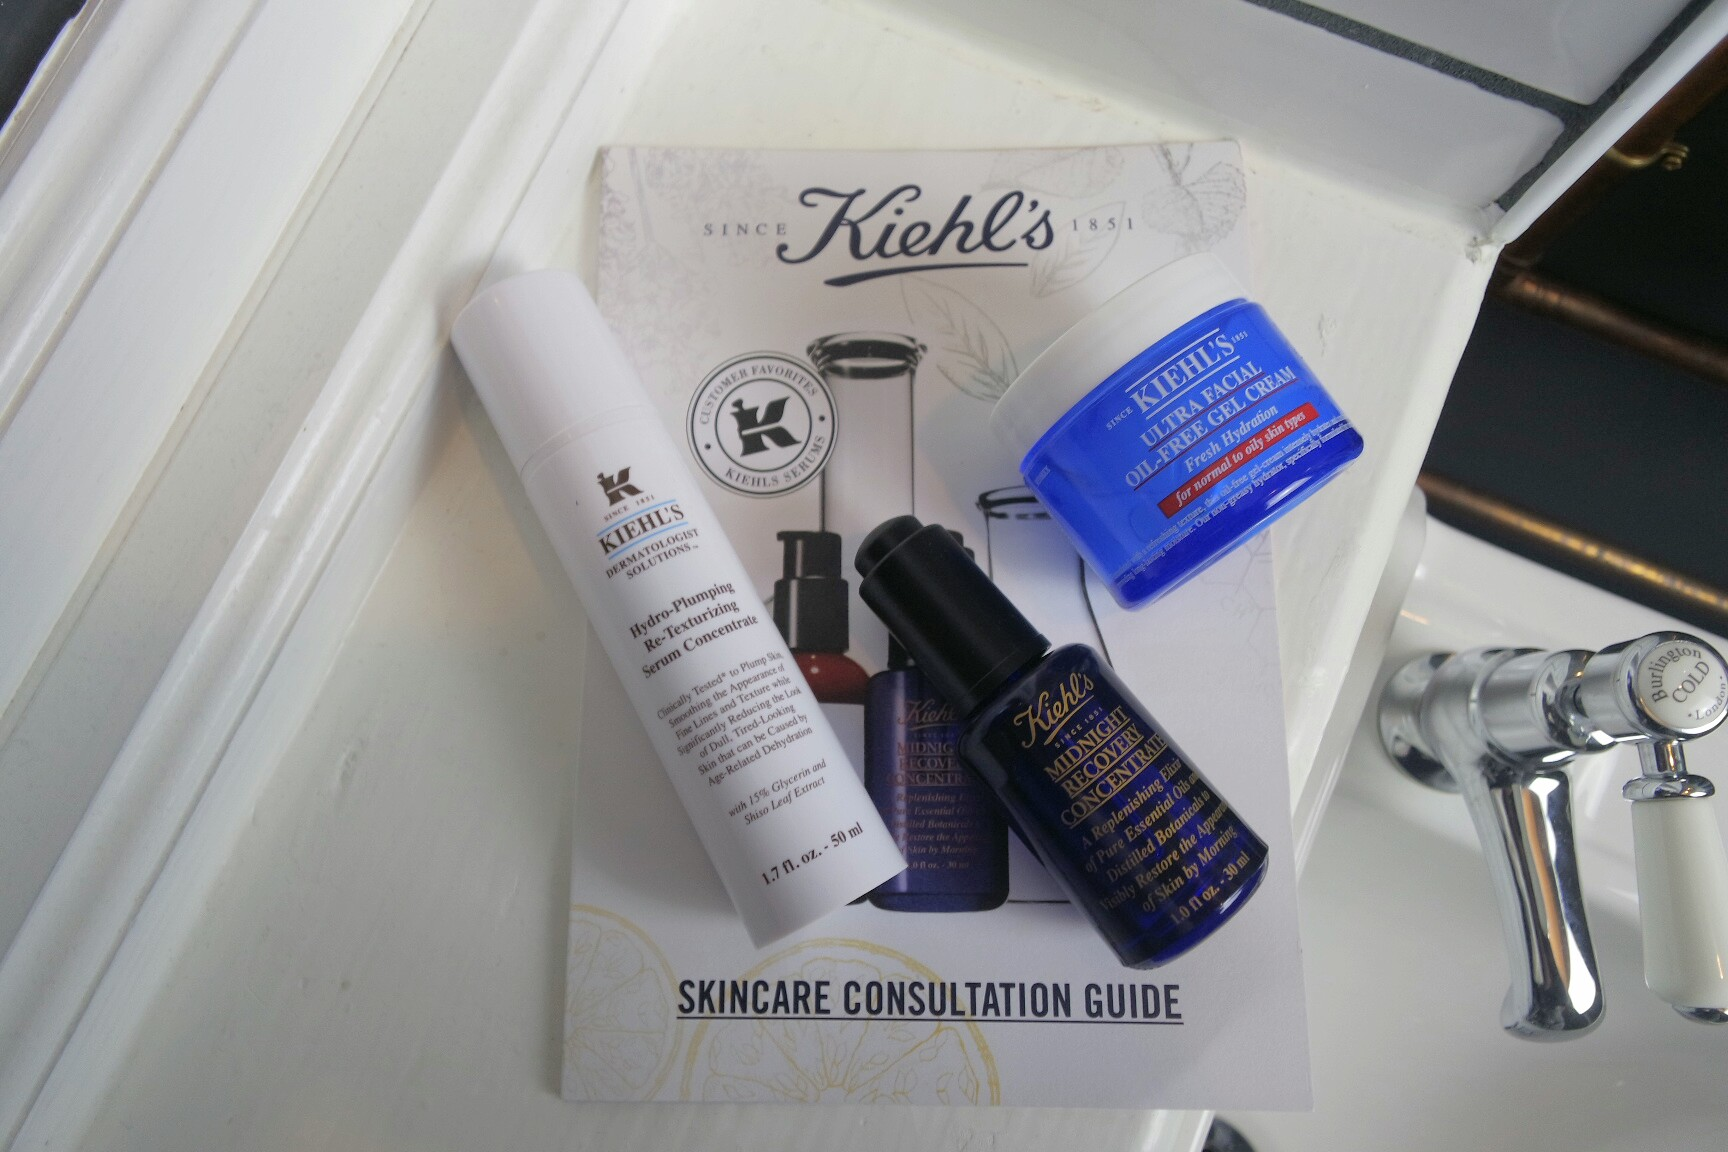 Kiehls Hydro-plumping, Re-texturizing Serum Concentrate, Kiehls Ultra Facial Oil-Free Gel Cream and Kiehls Midnight Recovery Concentrate